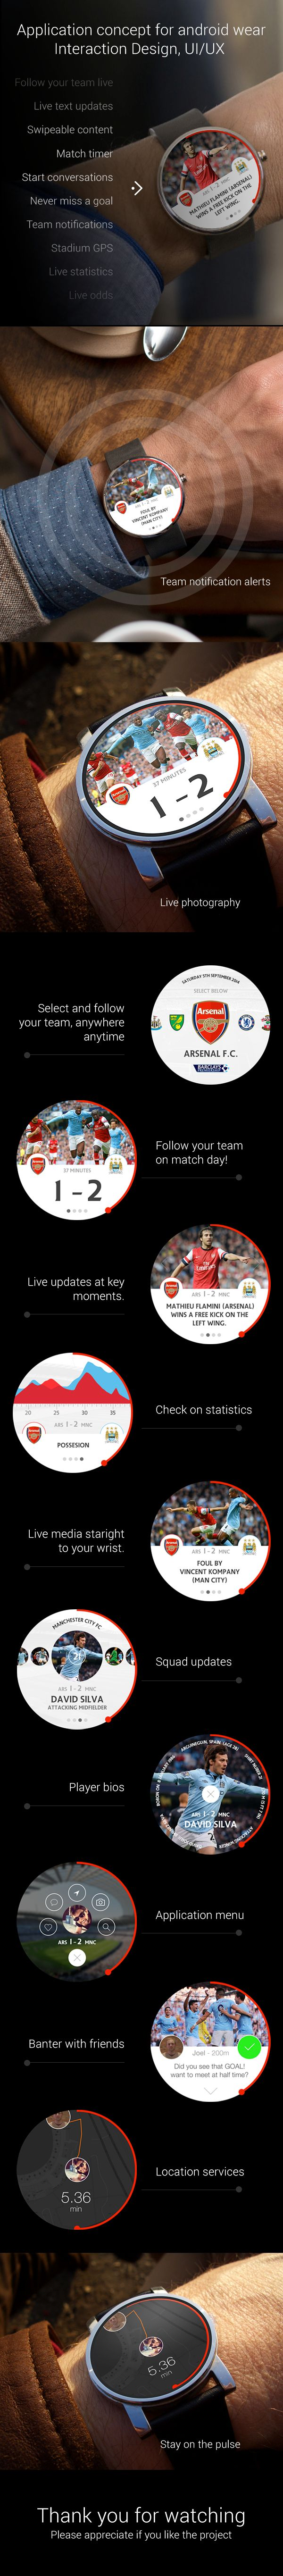 Football Soccer Application concept for android wear by David Hampshire, via Behance